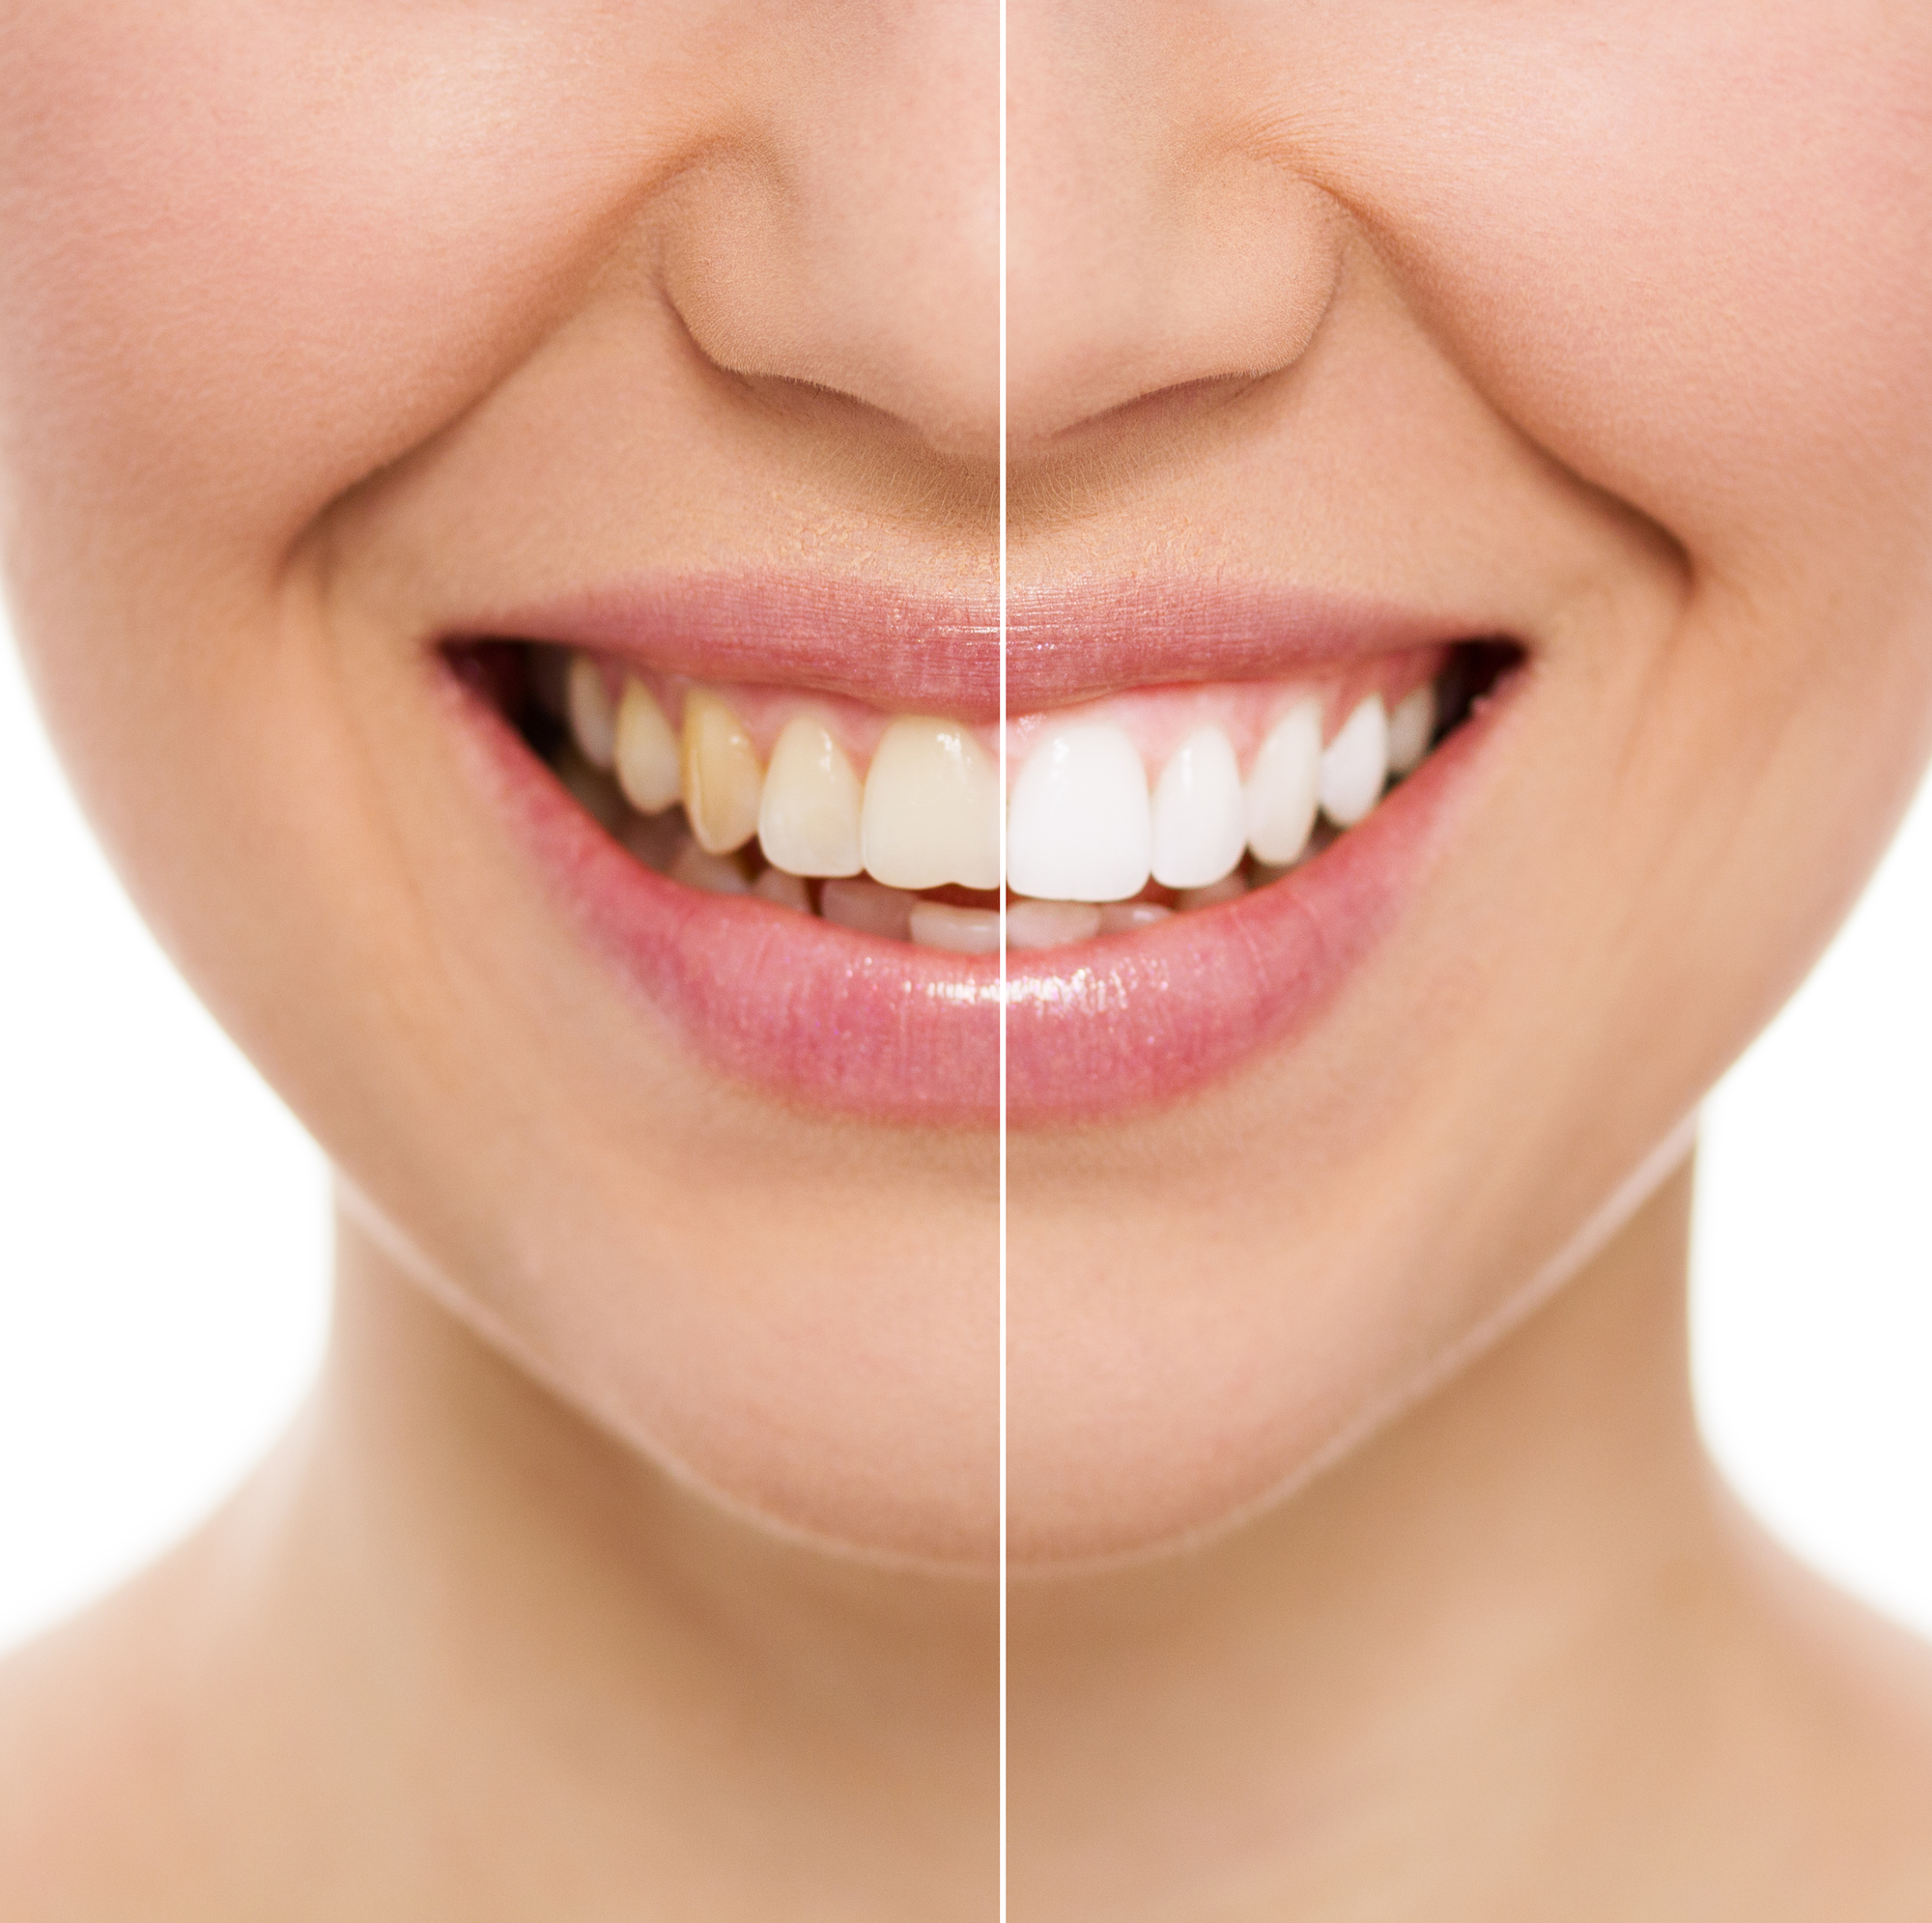 woman-smiling-after-whitening-teeth